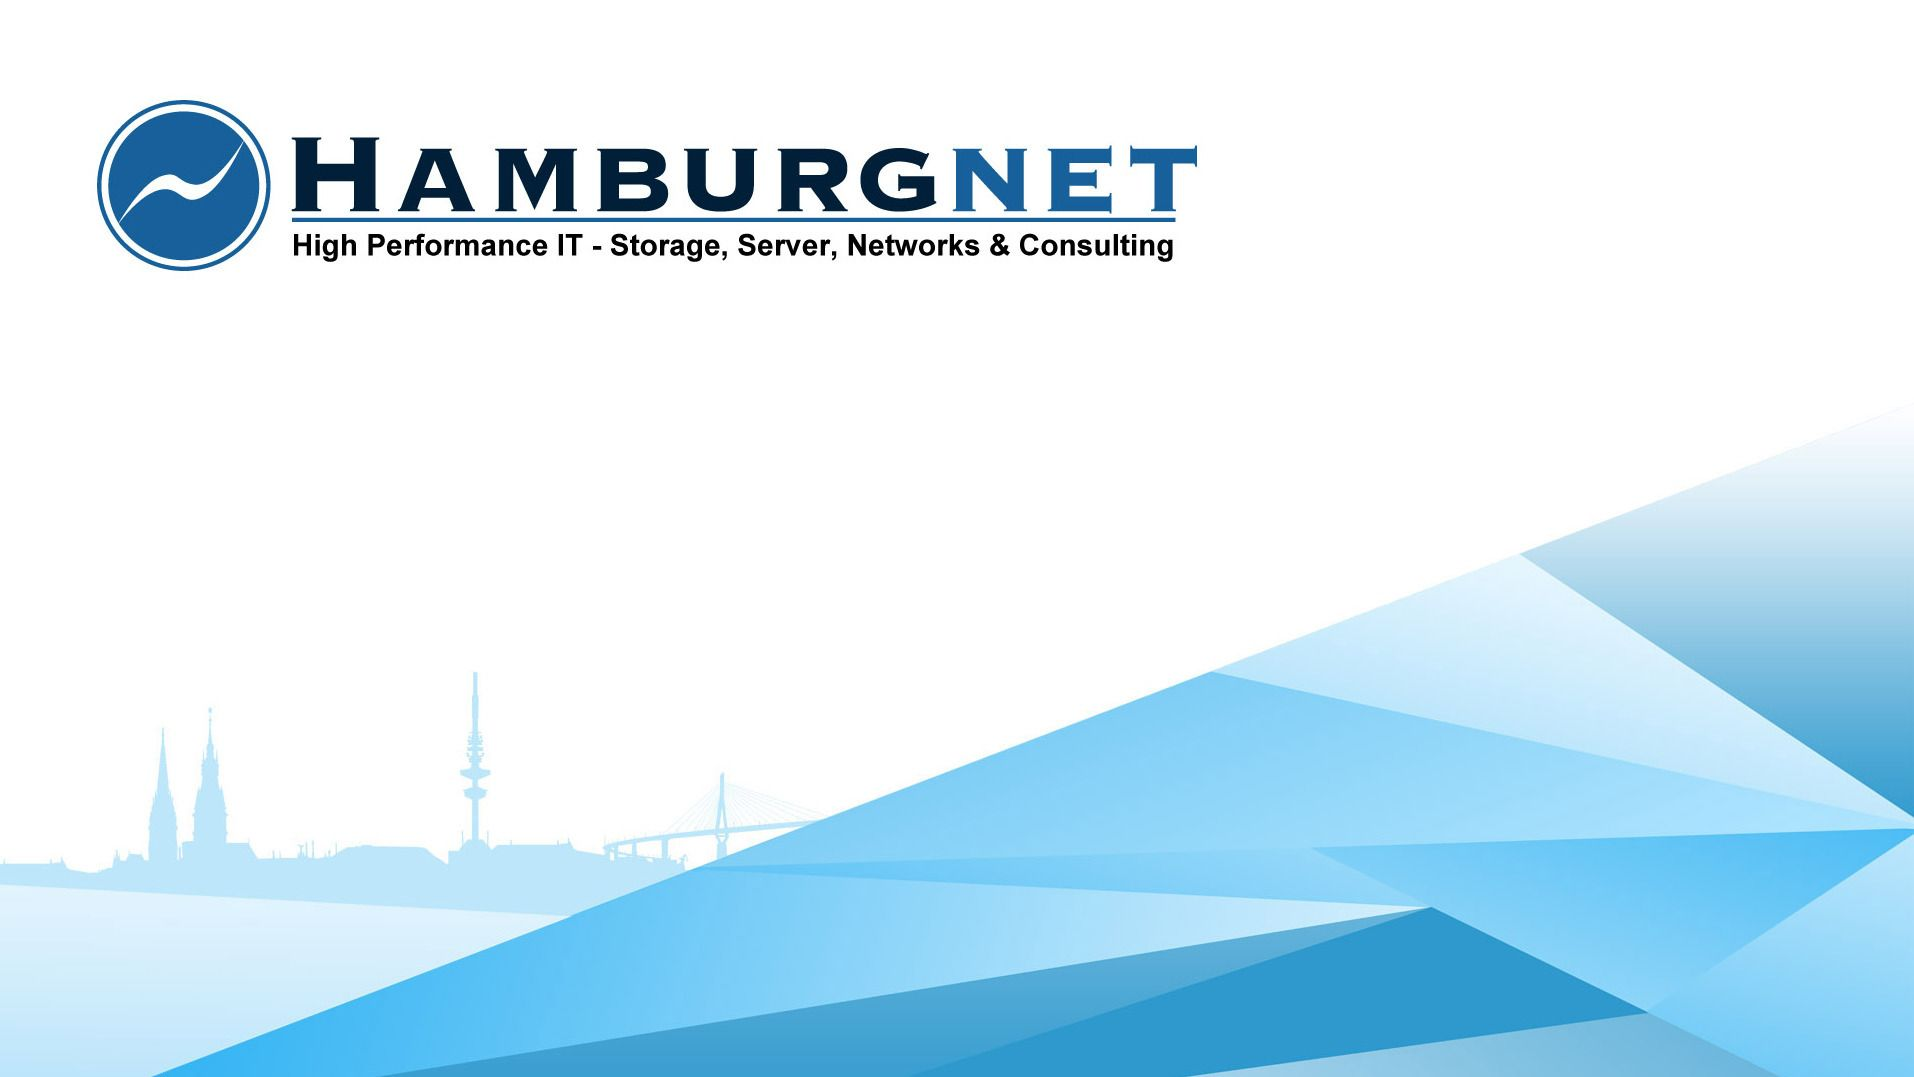 Hamburgnet - Software Defined Datacenter